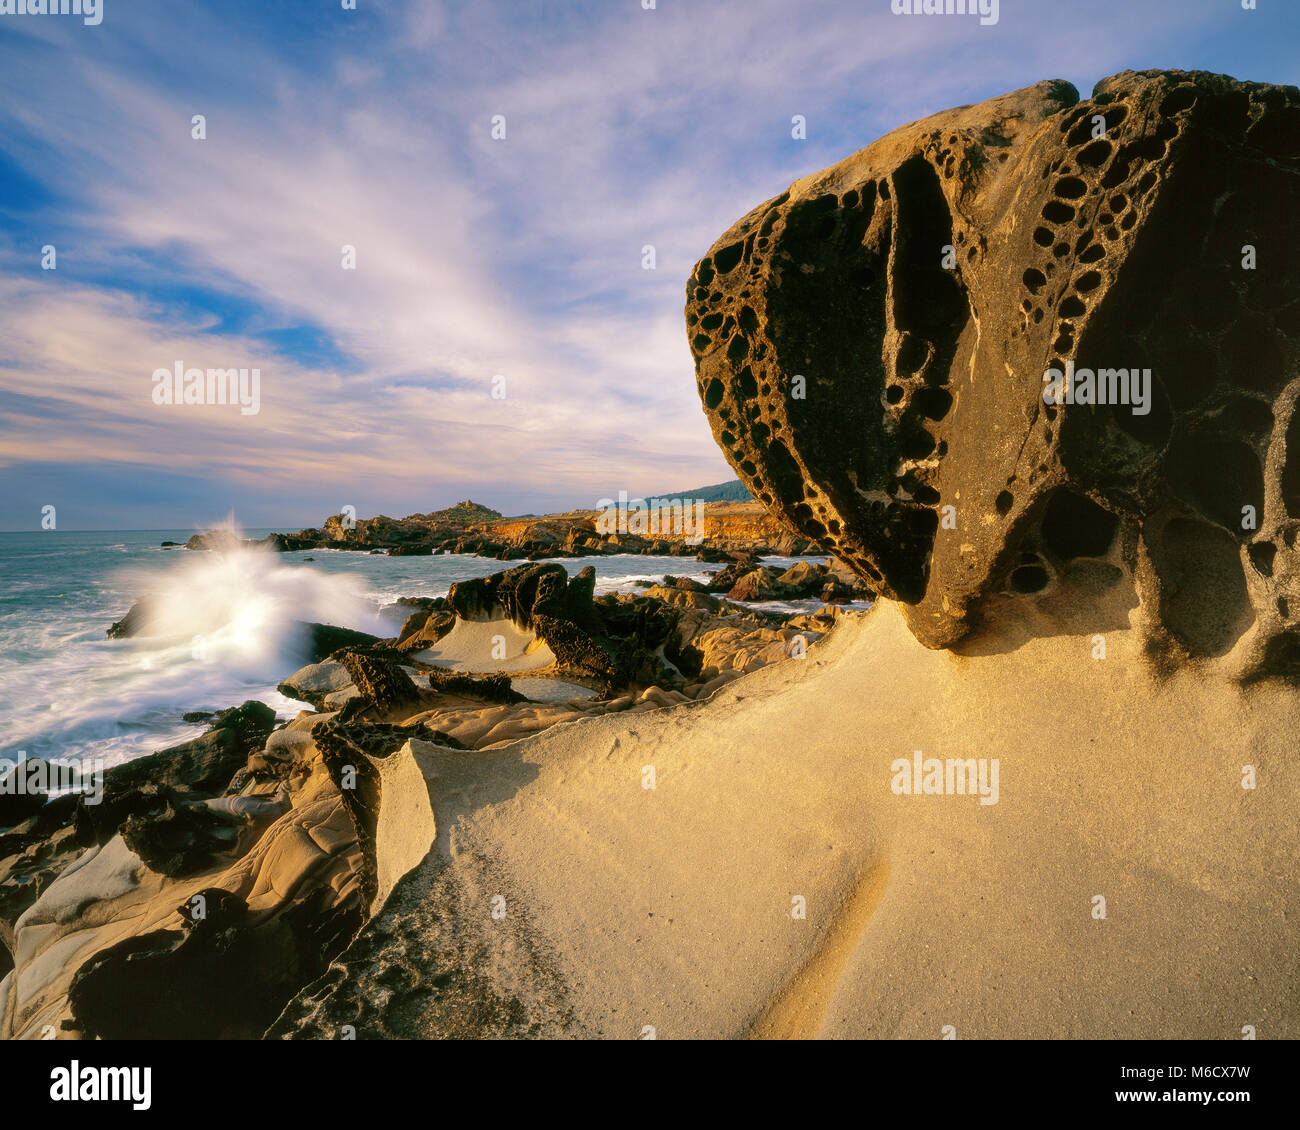 Sandstone Formations, Salt Point State Park, Sonoma County, California - Stock Image